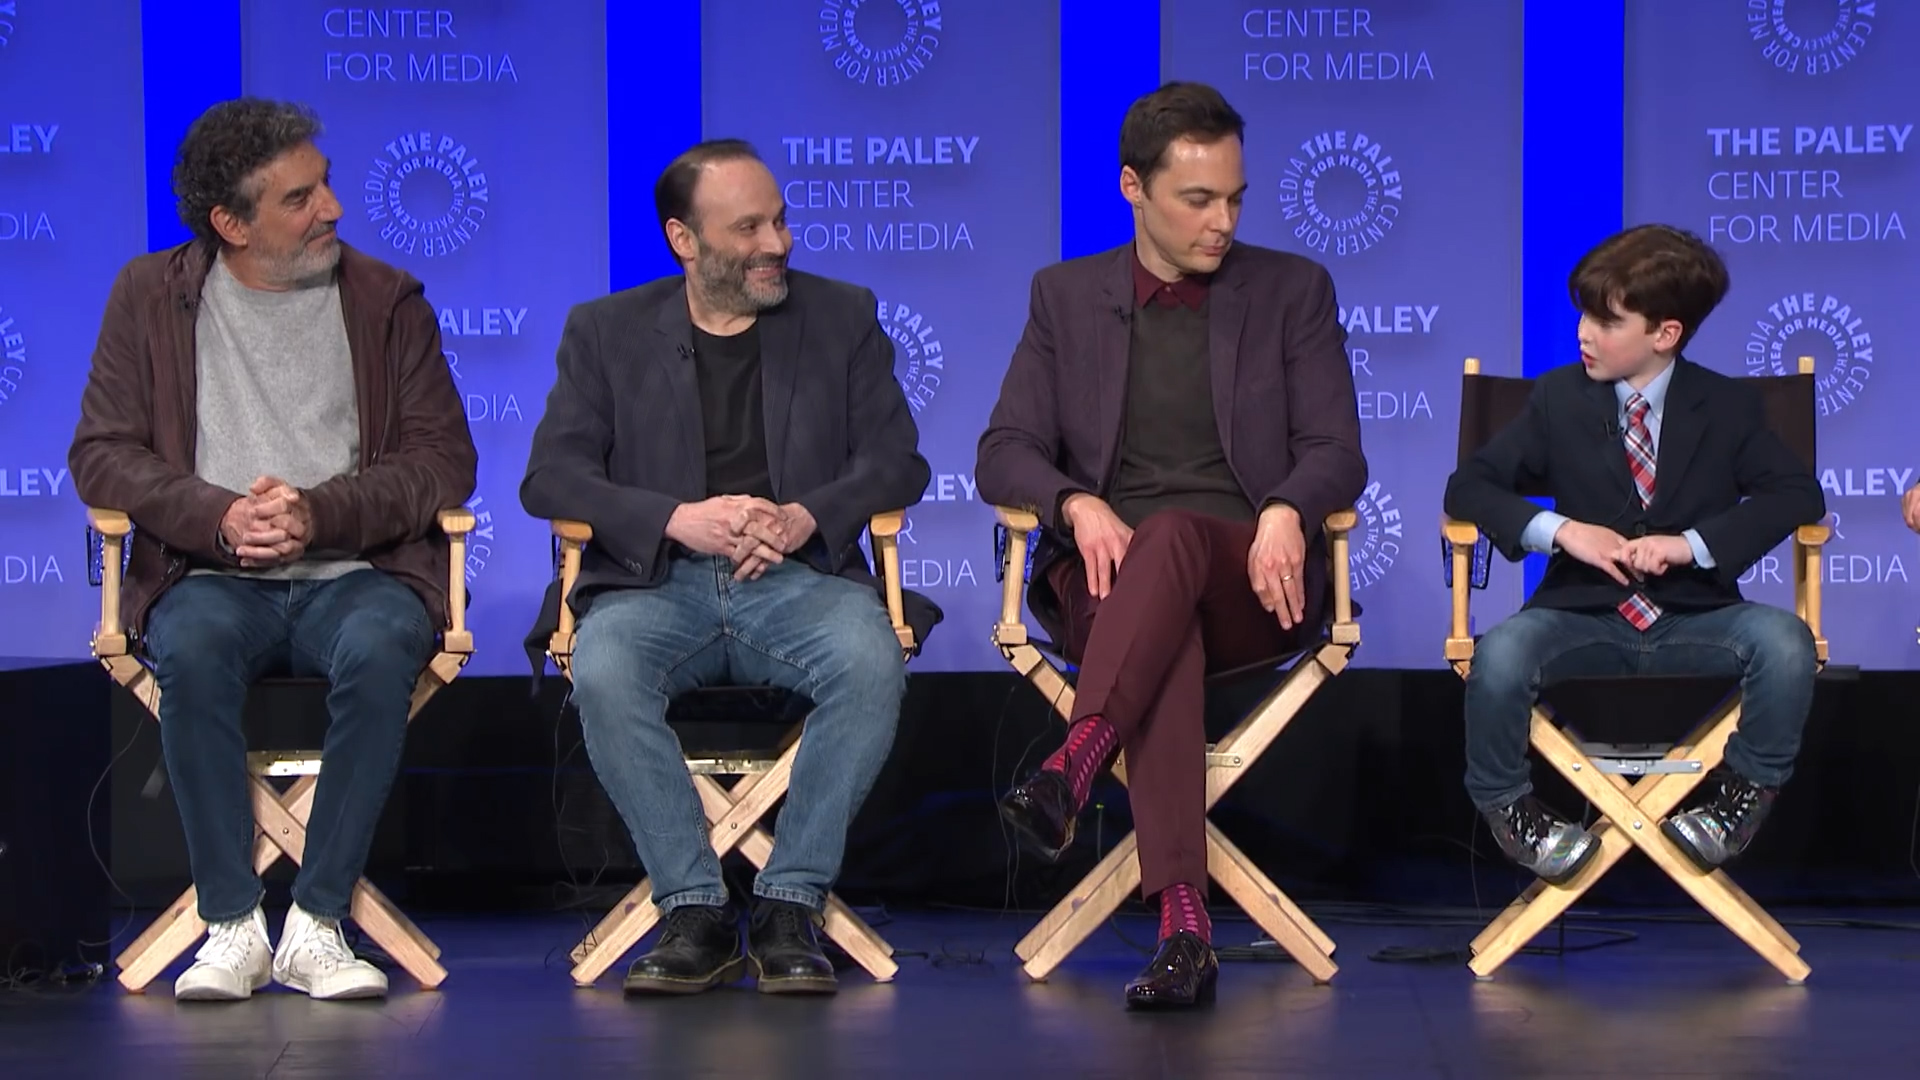 Jim Parsons jokes that Iain Armitage has ditched him now he's famous